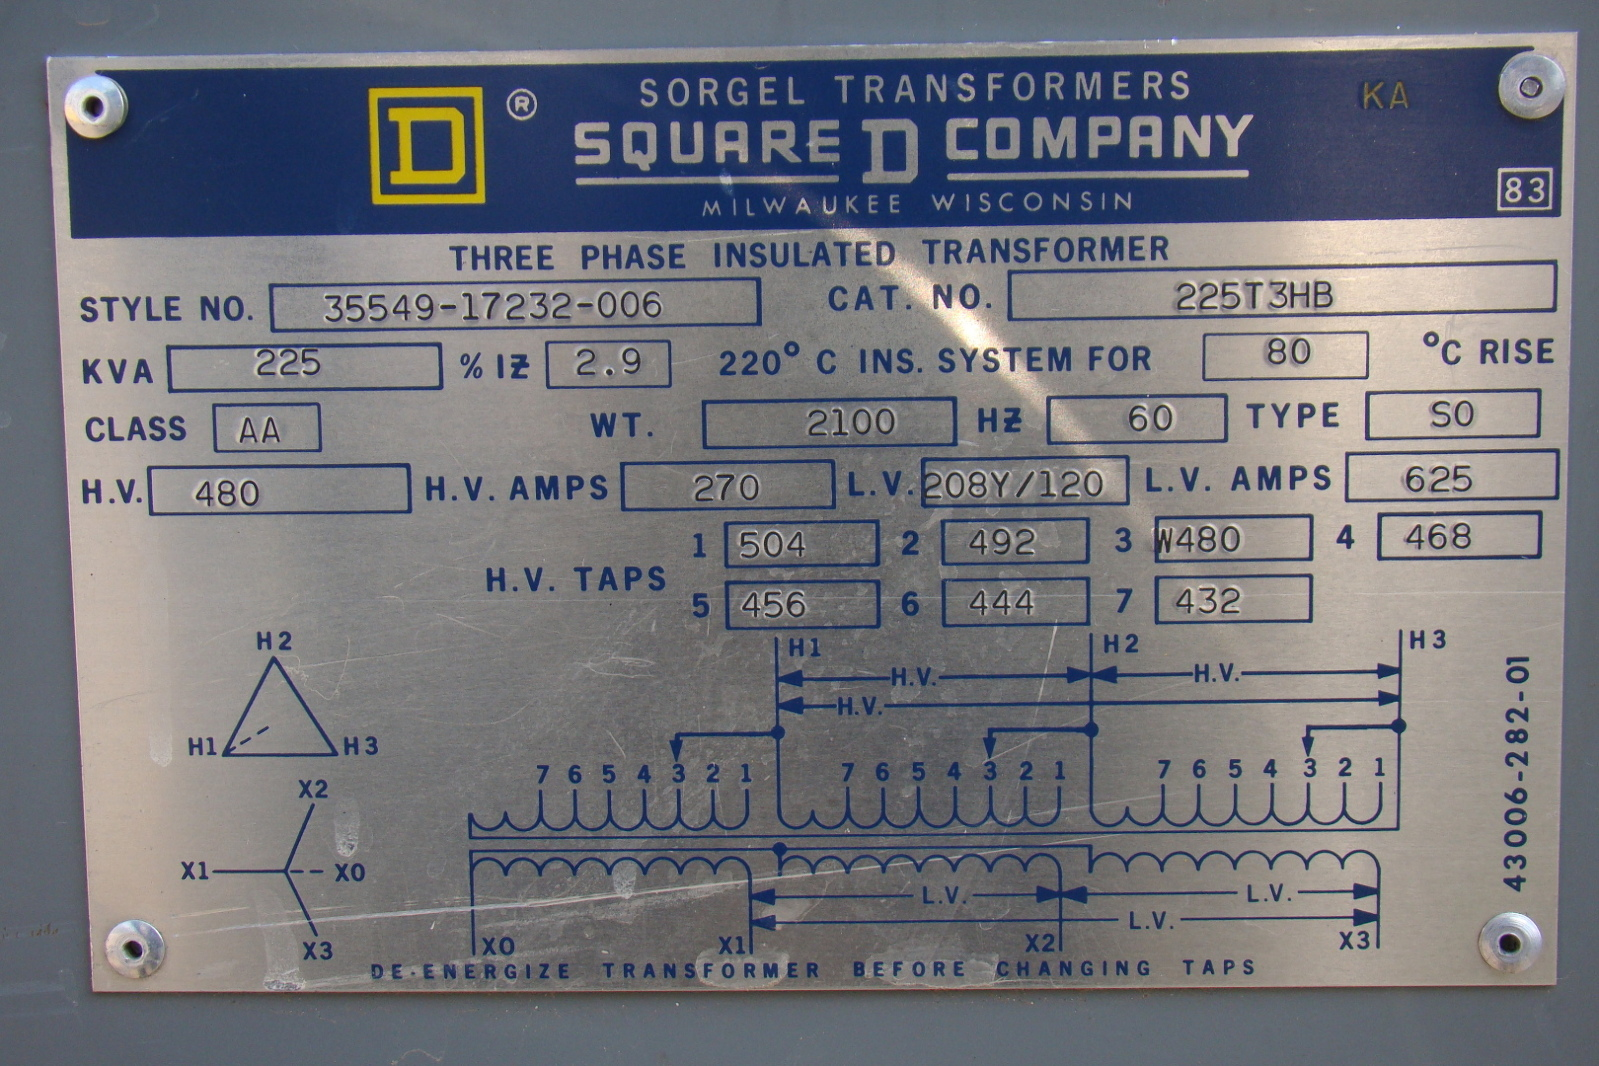 Square D Sorgel Transformers Wiring Diagram furthermore Parrot Ck3100 Wiring Diagram Pdf in addition  on transformers sign wirel diagram